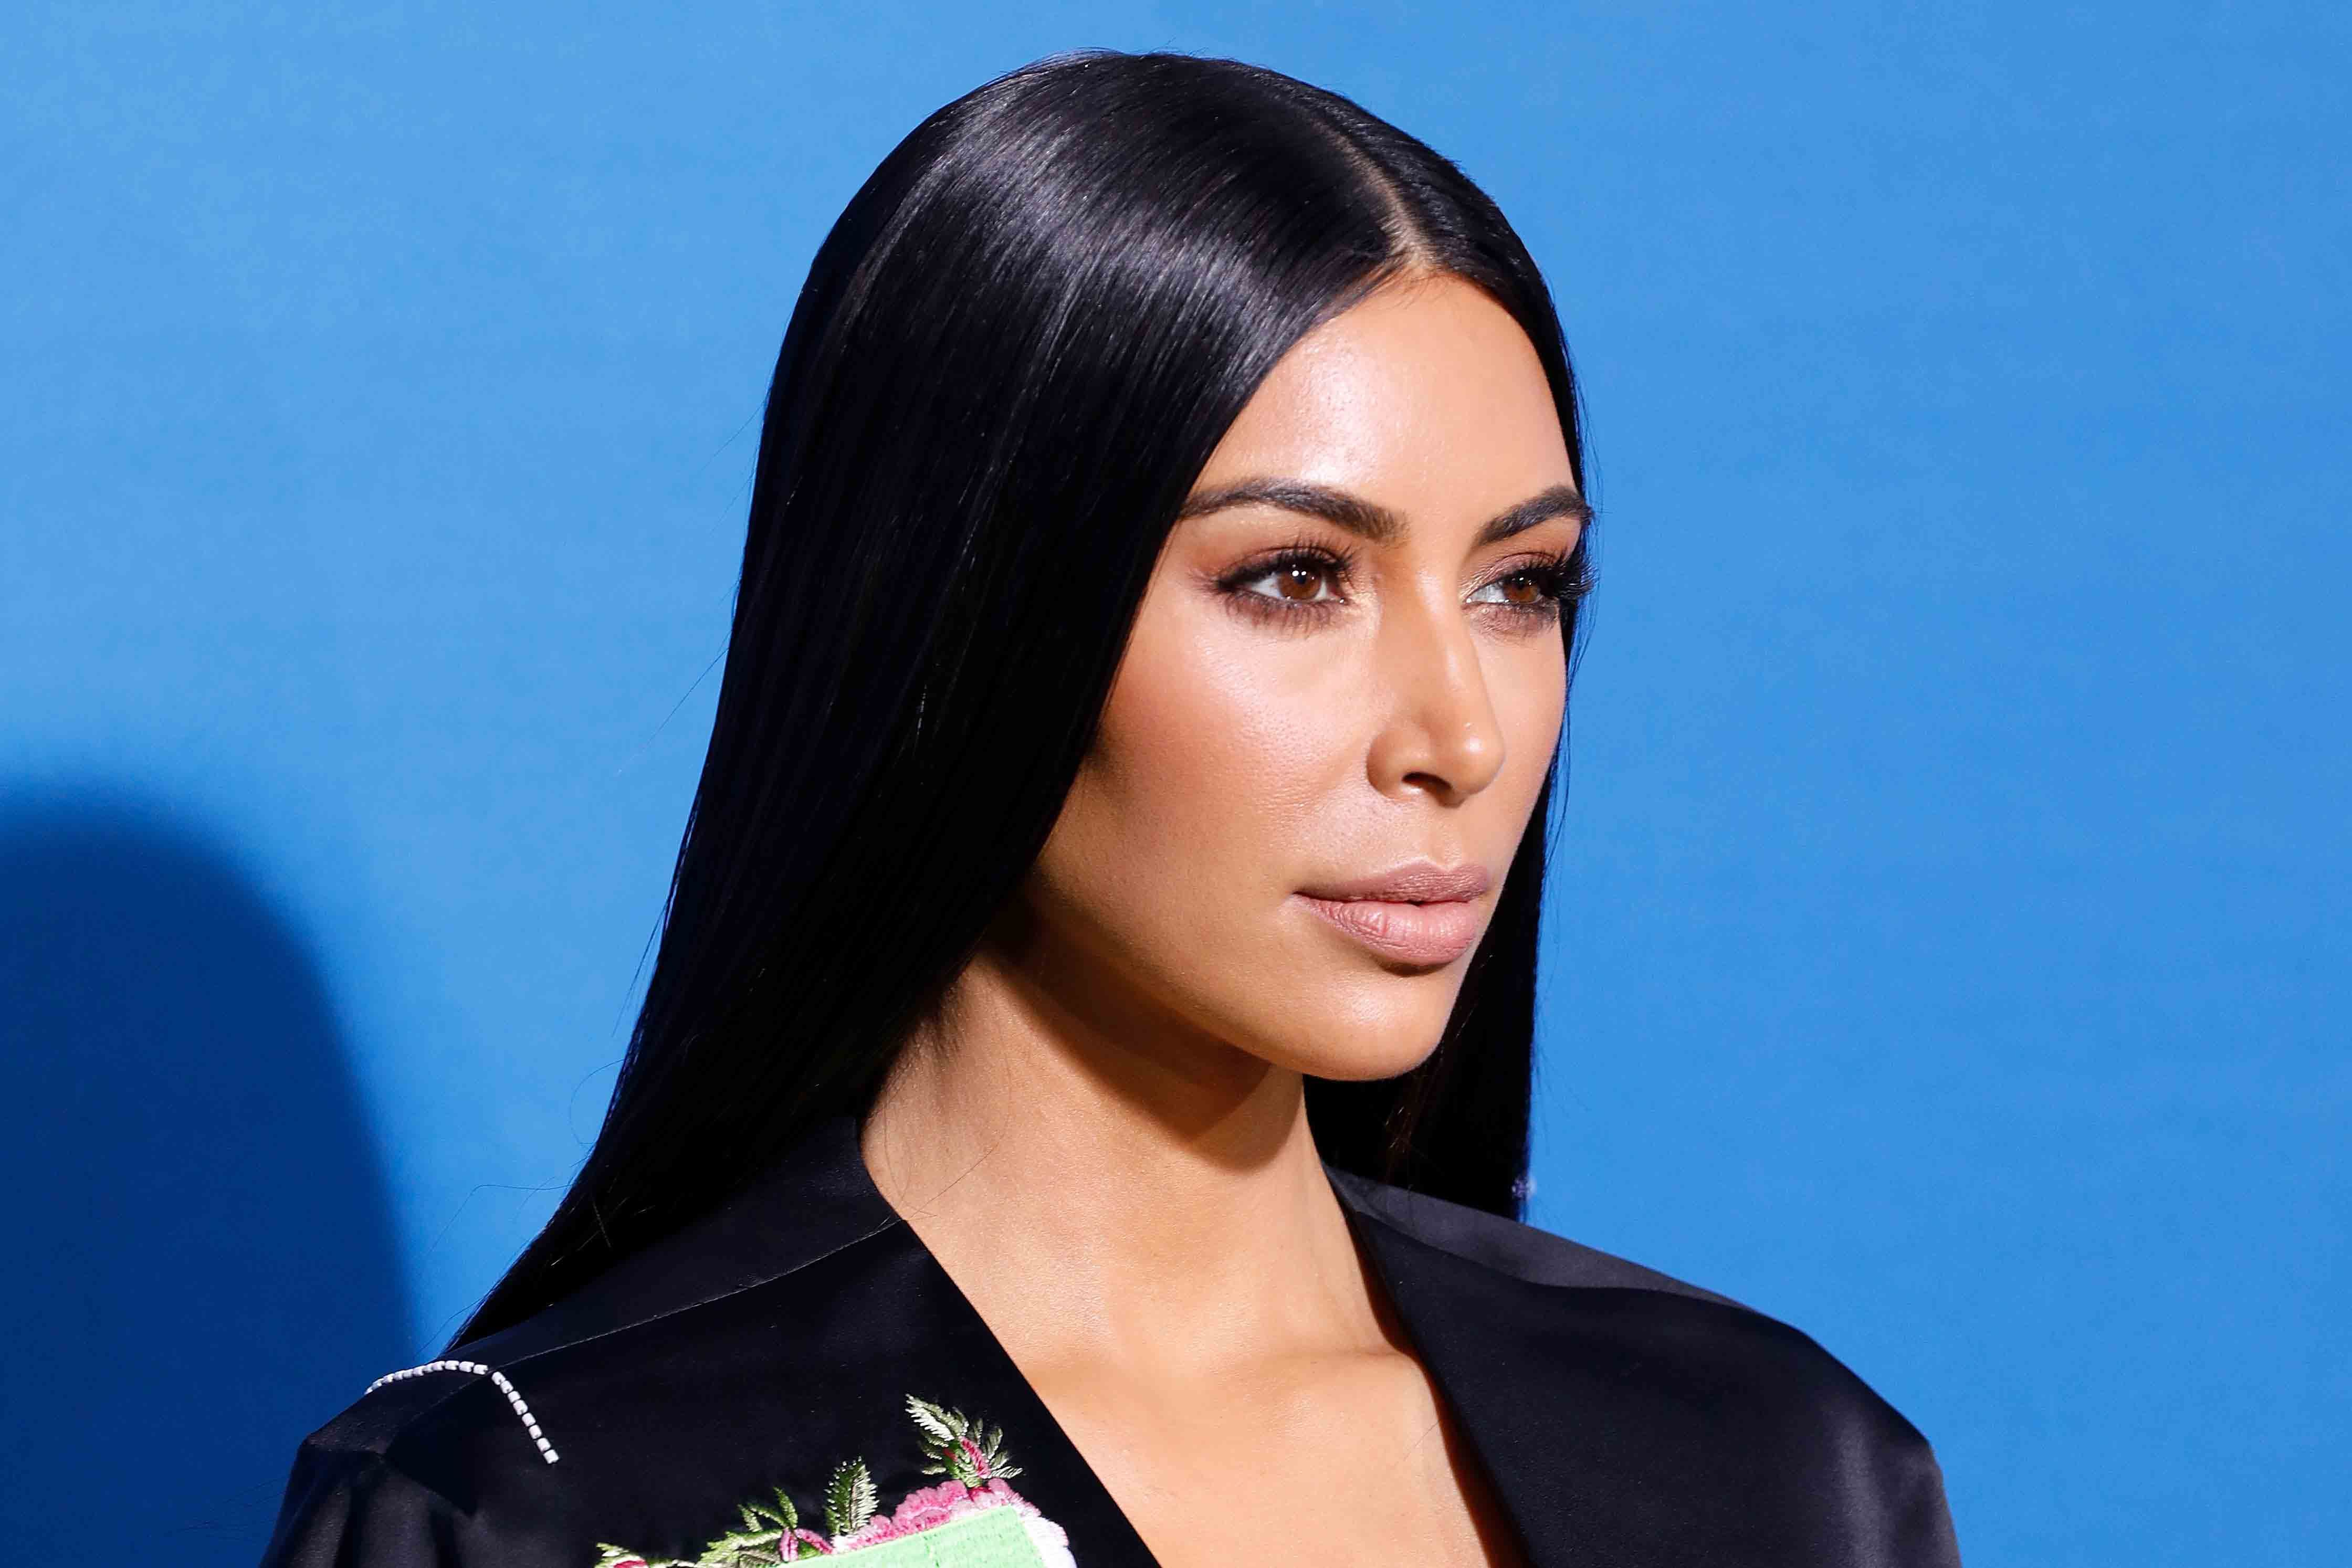 Kim Kardashian's New Chunky Highlights Will Give You All the '90s Feels